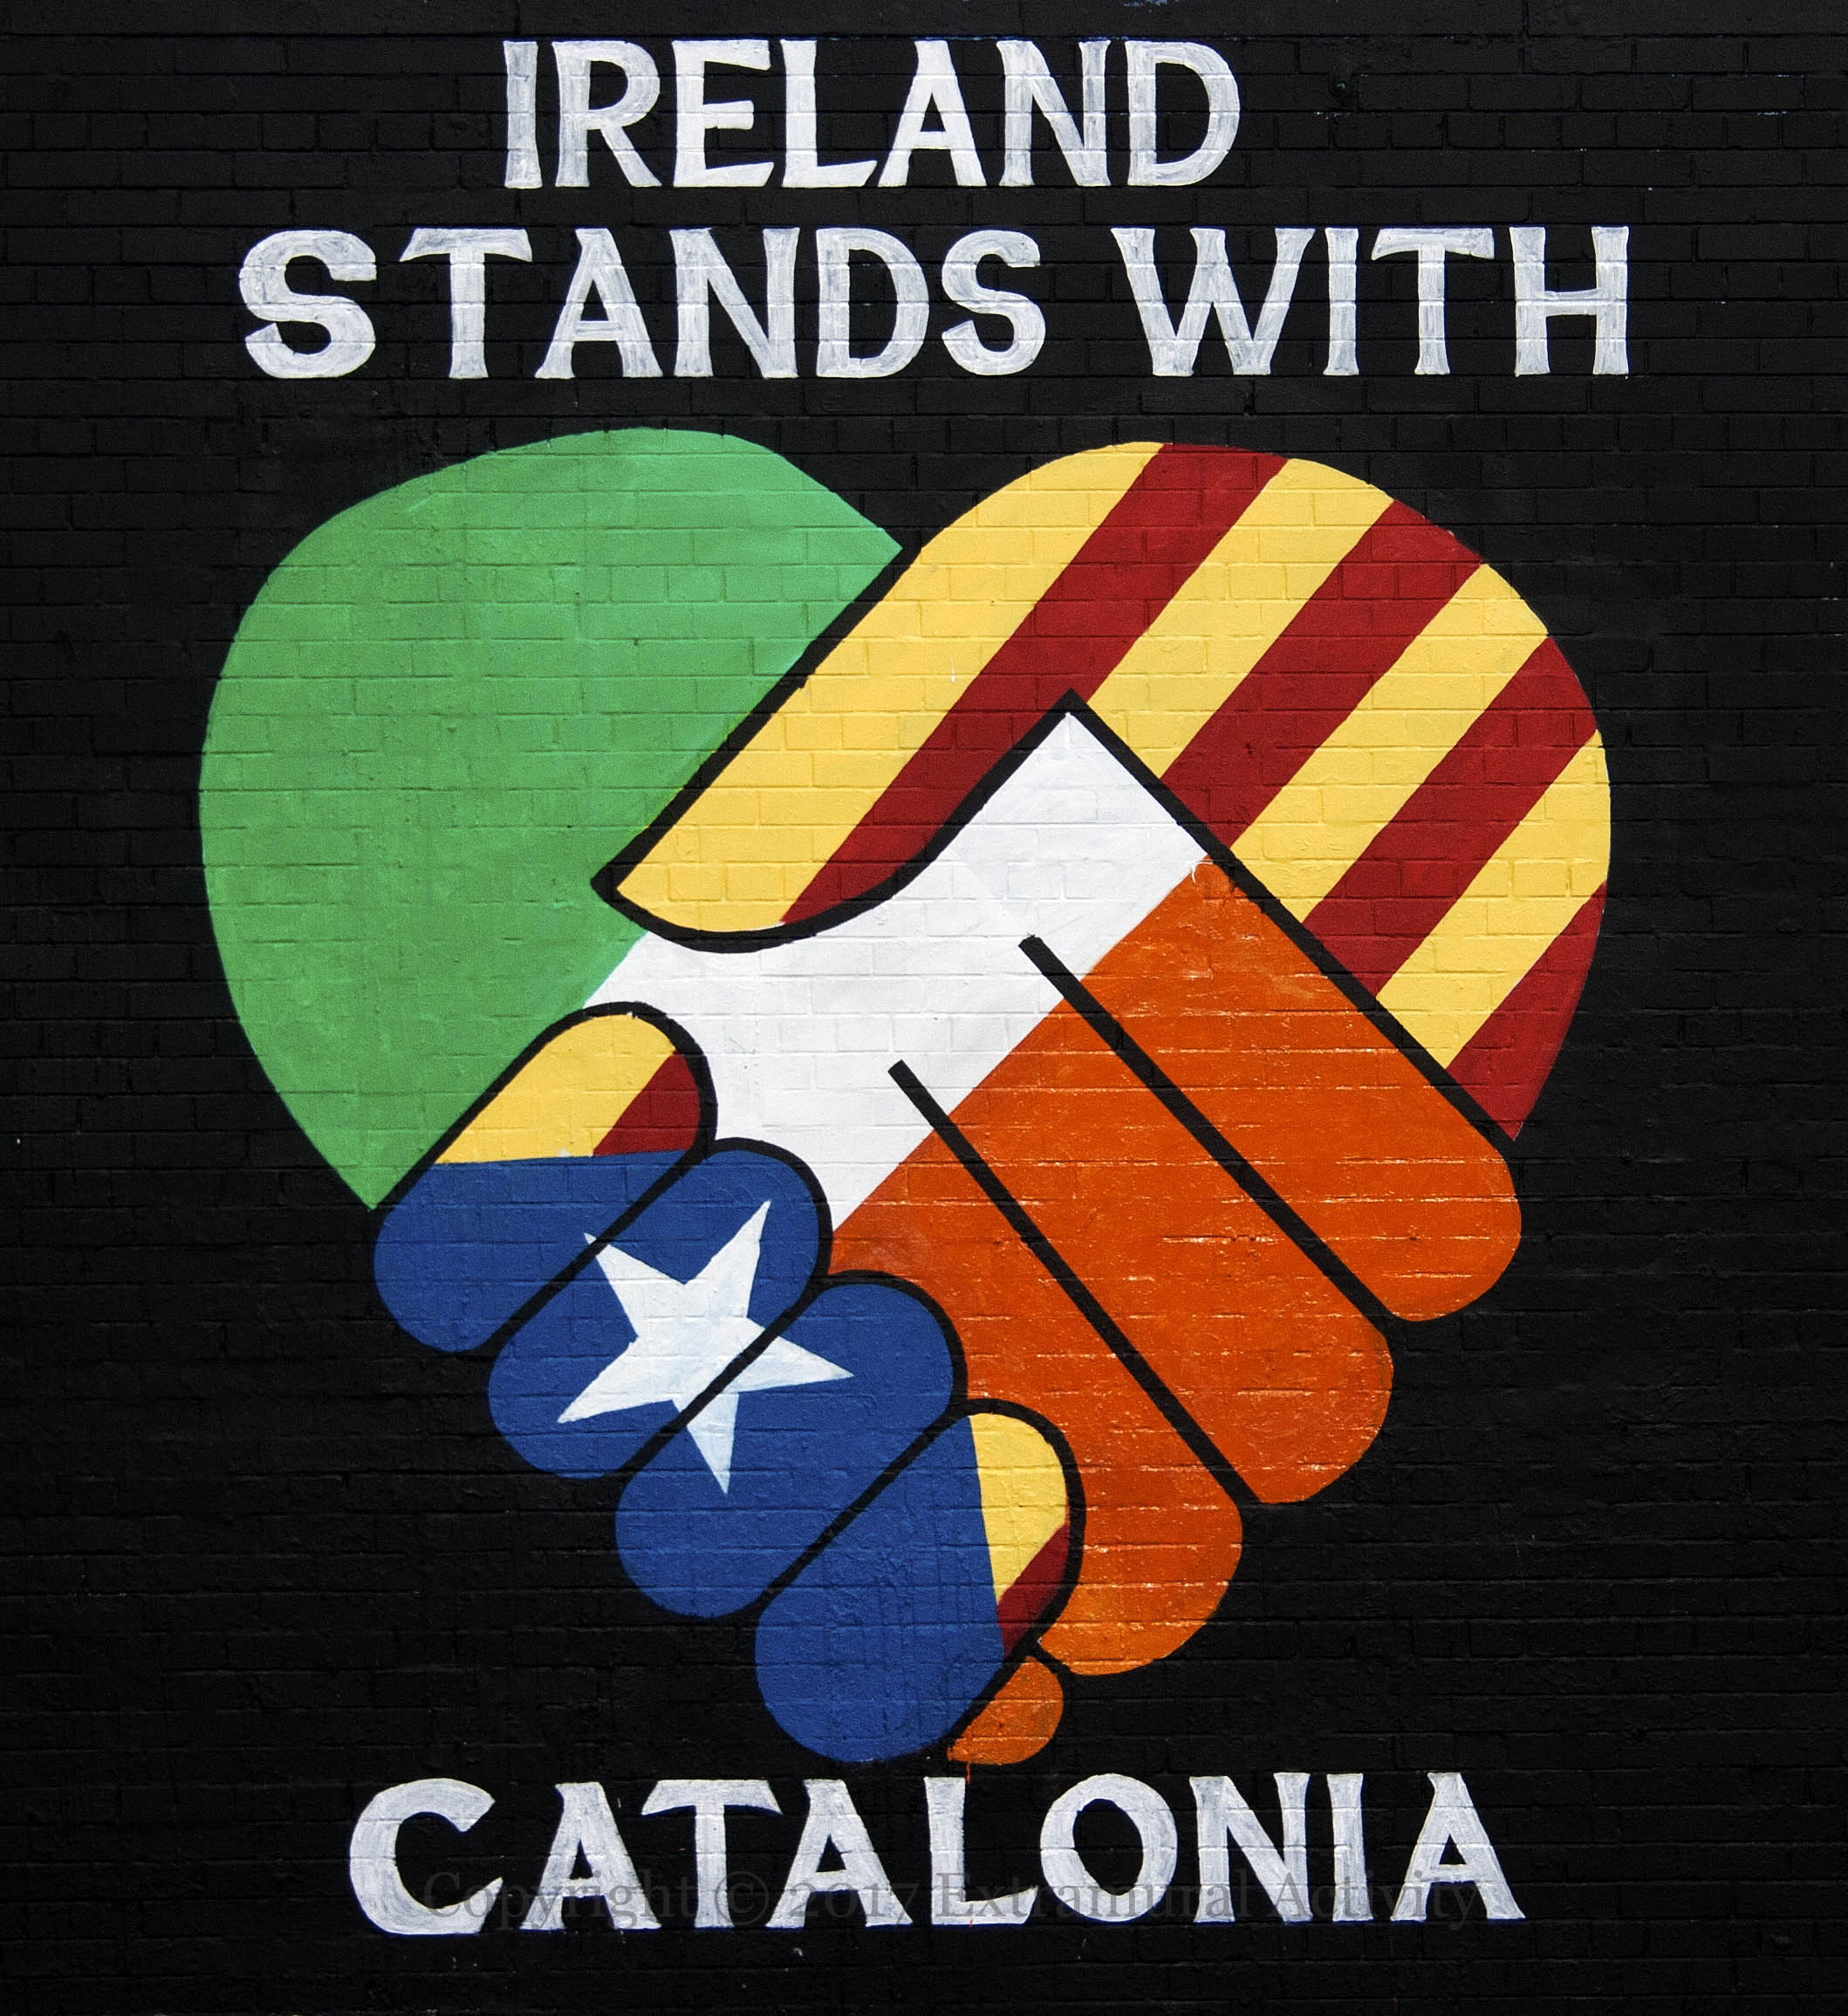 Ireland Stands With Catalonia Extramural Activity